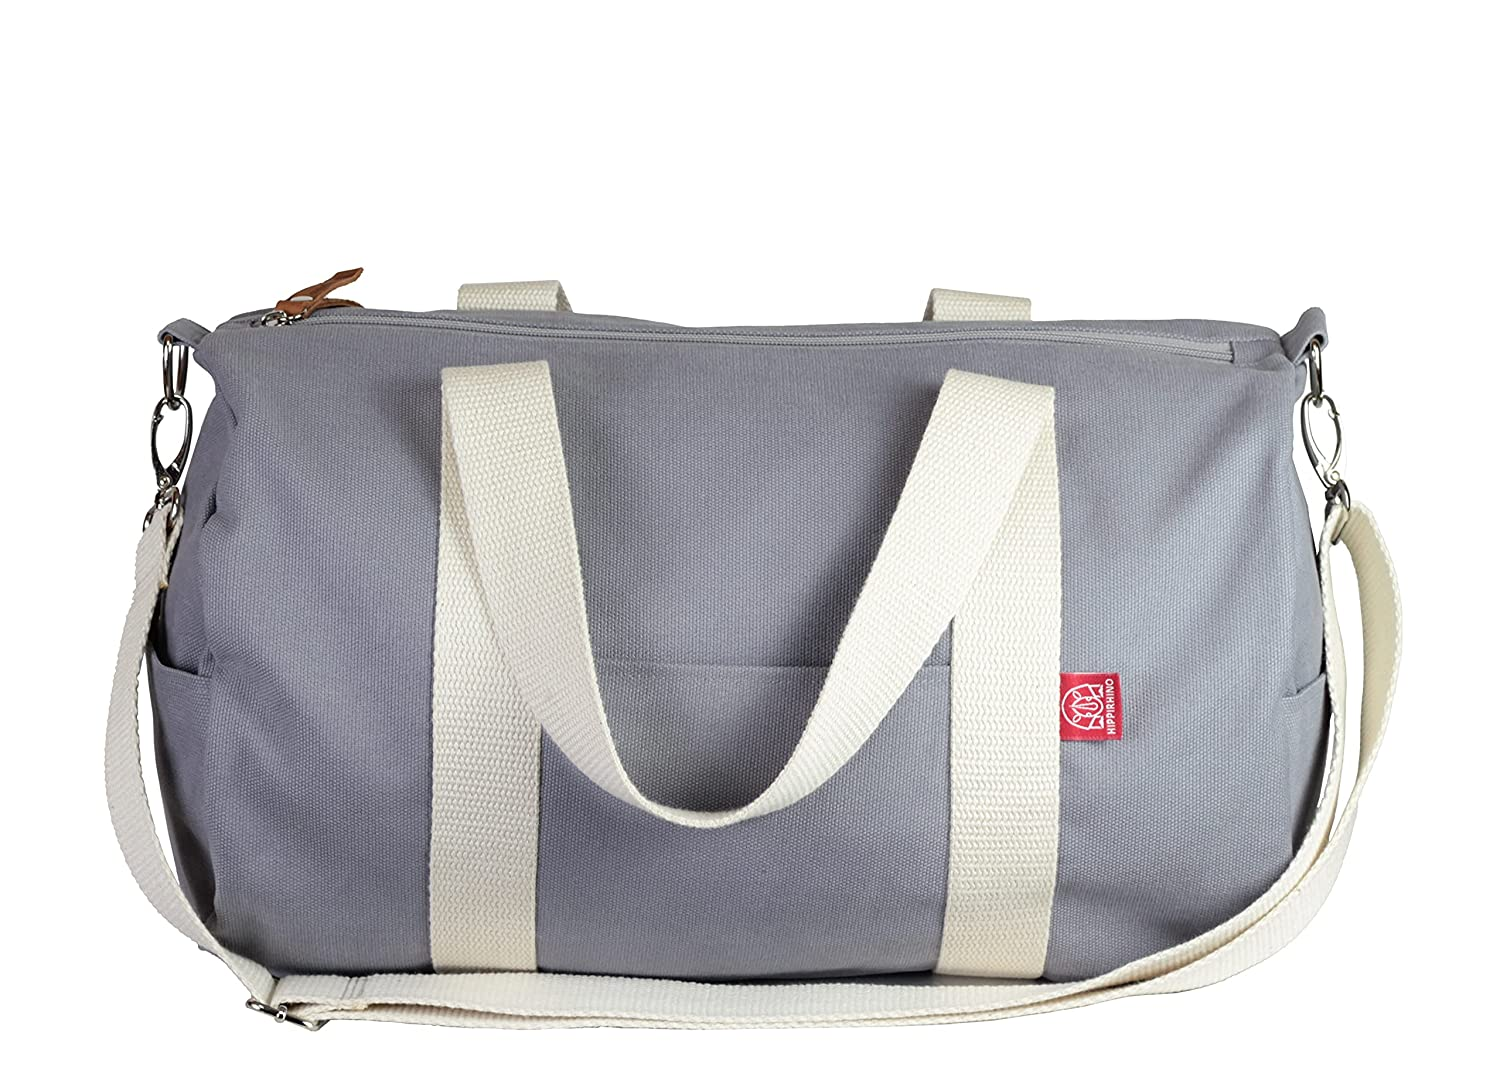 Light Gray Bag Max 88% OFF Duffel Sport Long Adjustable and Wa Strap price